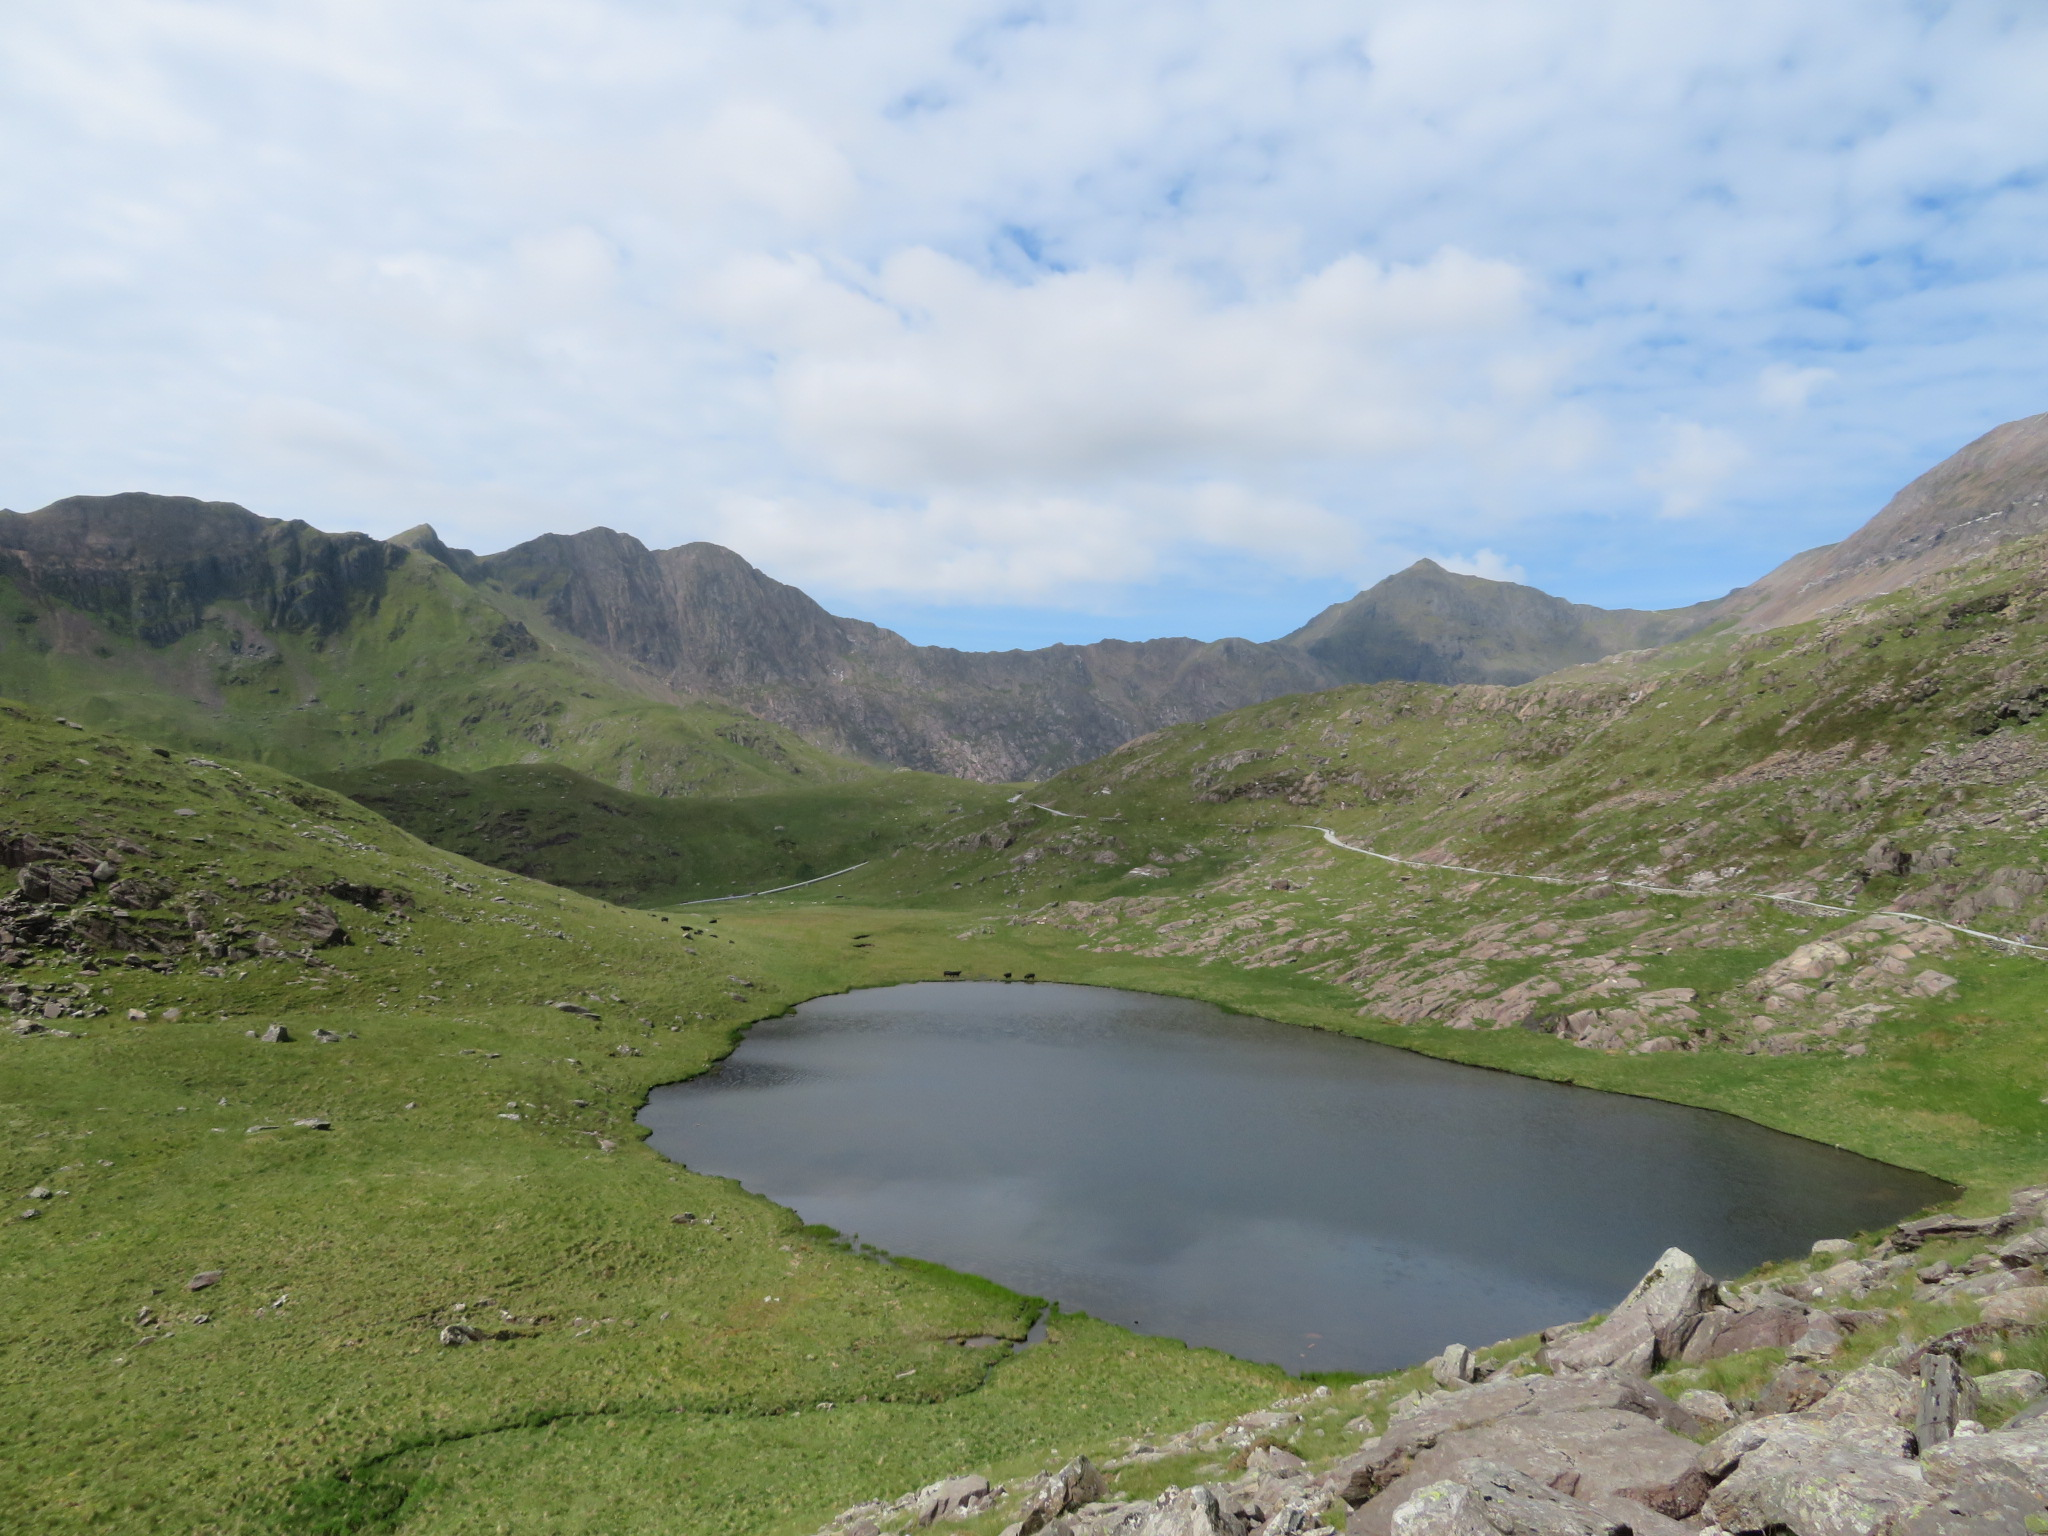 United Kingdom Wales Snowdonia, Snowdon Horseshoe, Miners Track, rounding bend for first view to massif, Walkopedia